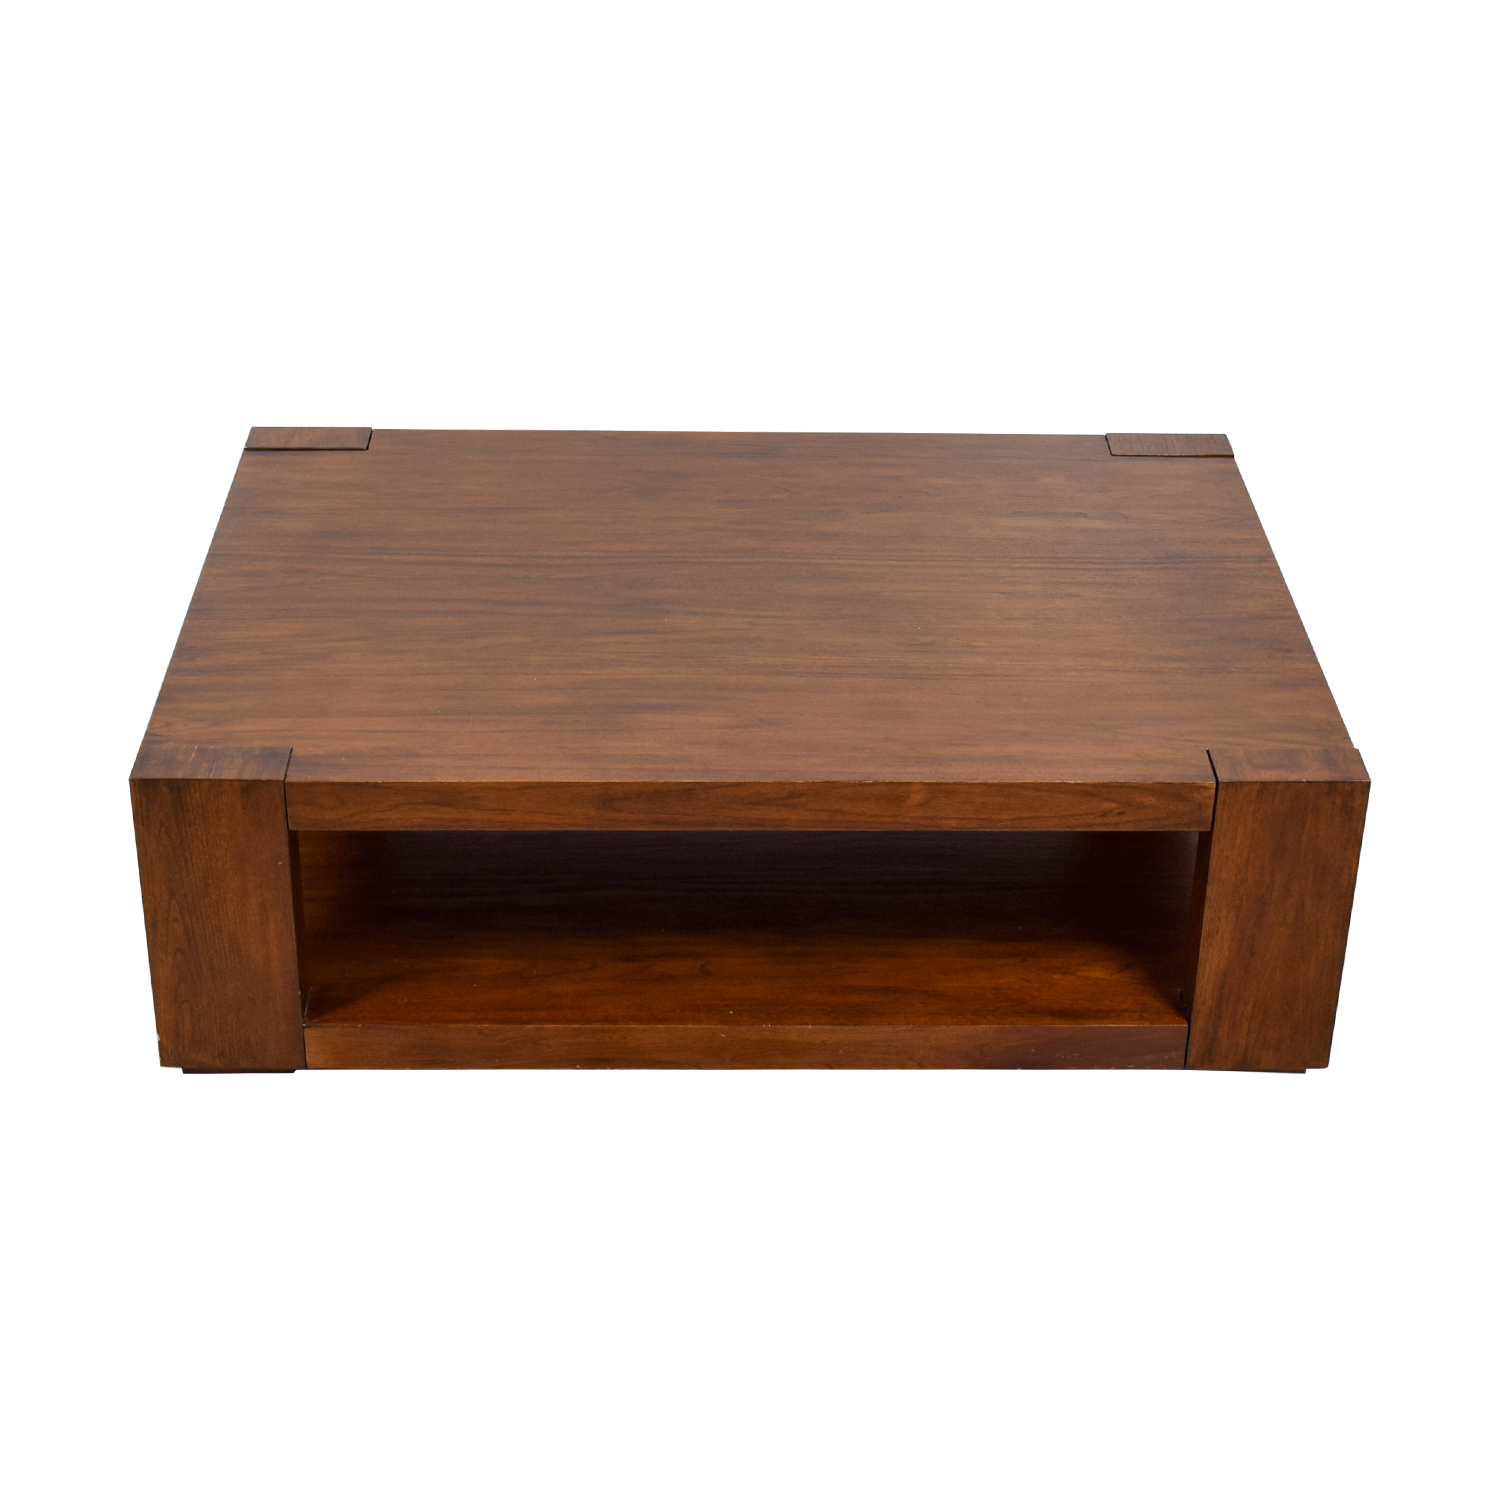 buy Crate & Barrel Lodge Coffee Table Crate & Barrel Coffee Tables